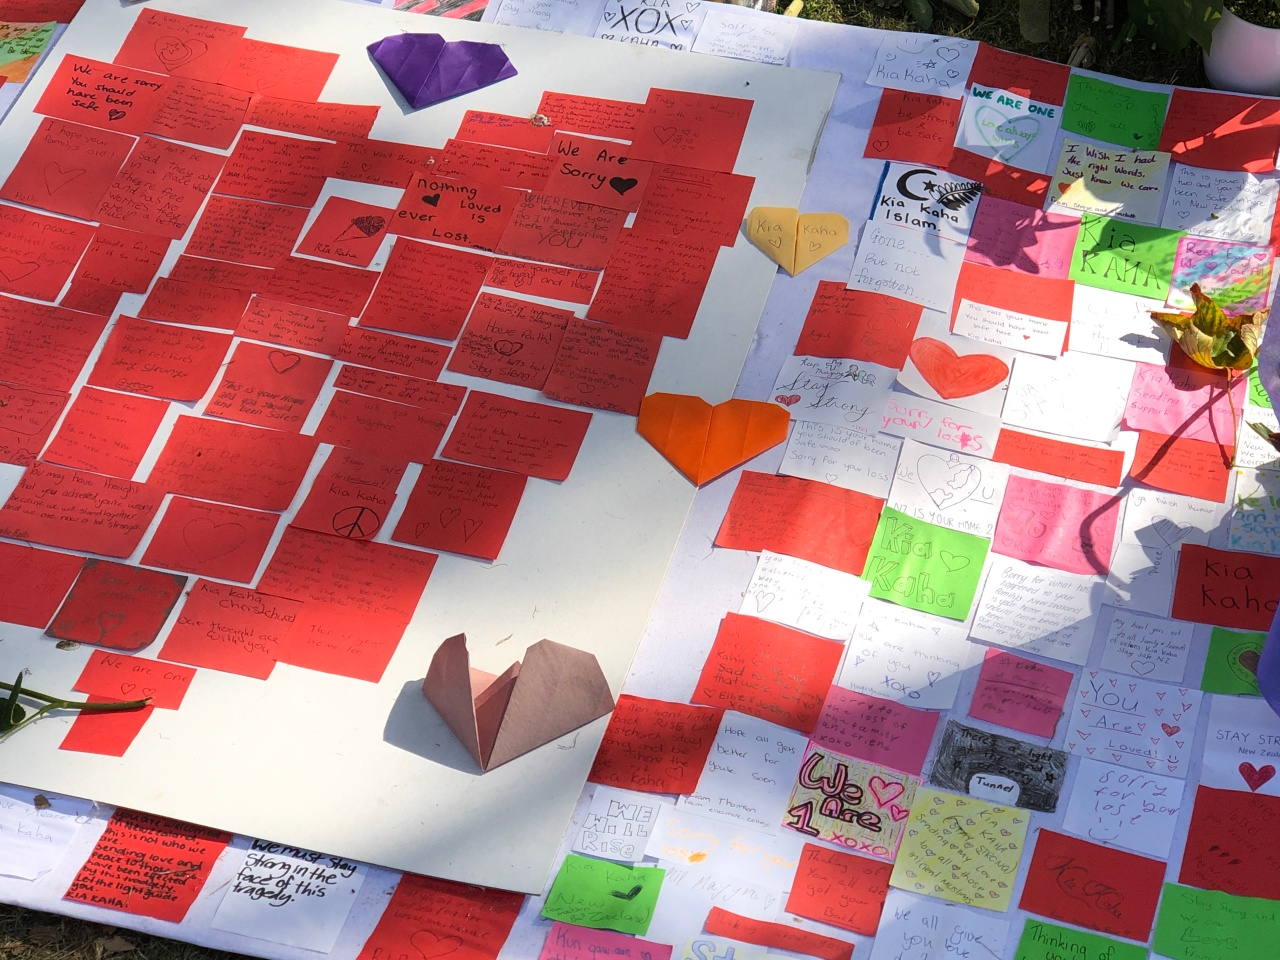 One board with red Post-It notes arranged in a heart shape with messages on it next to another board with other Post-It notes with more messages on it for the victims of the Christchurch terrorist attacks